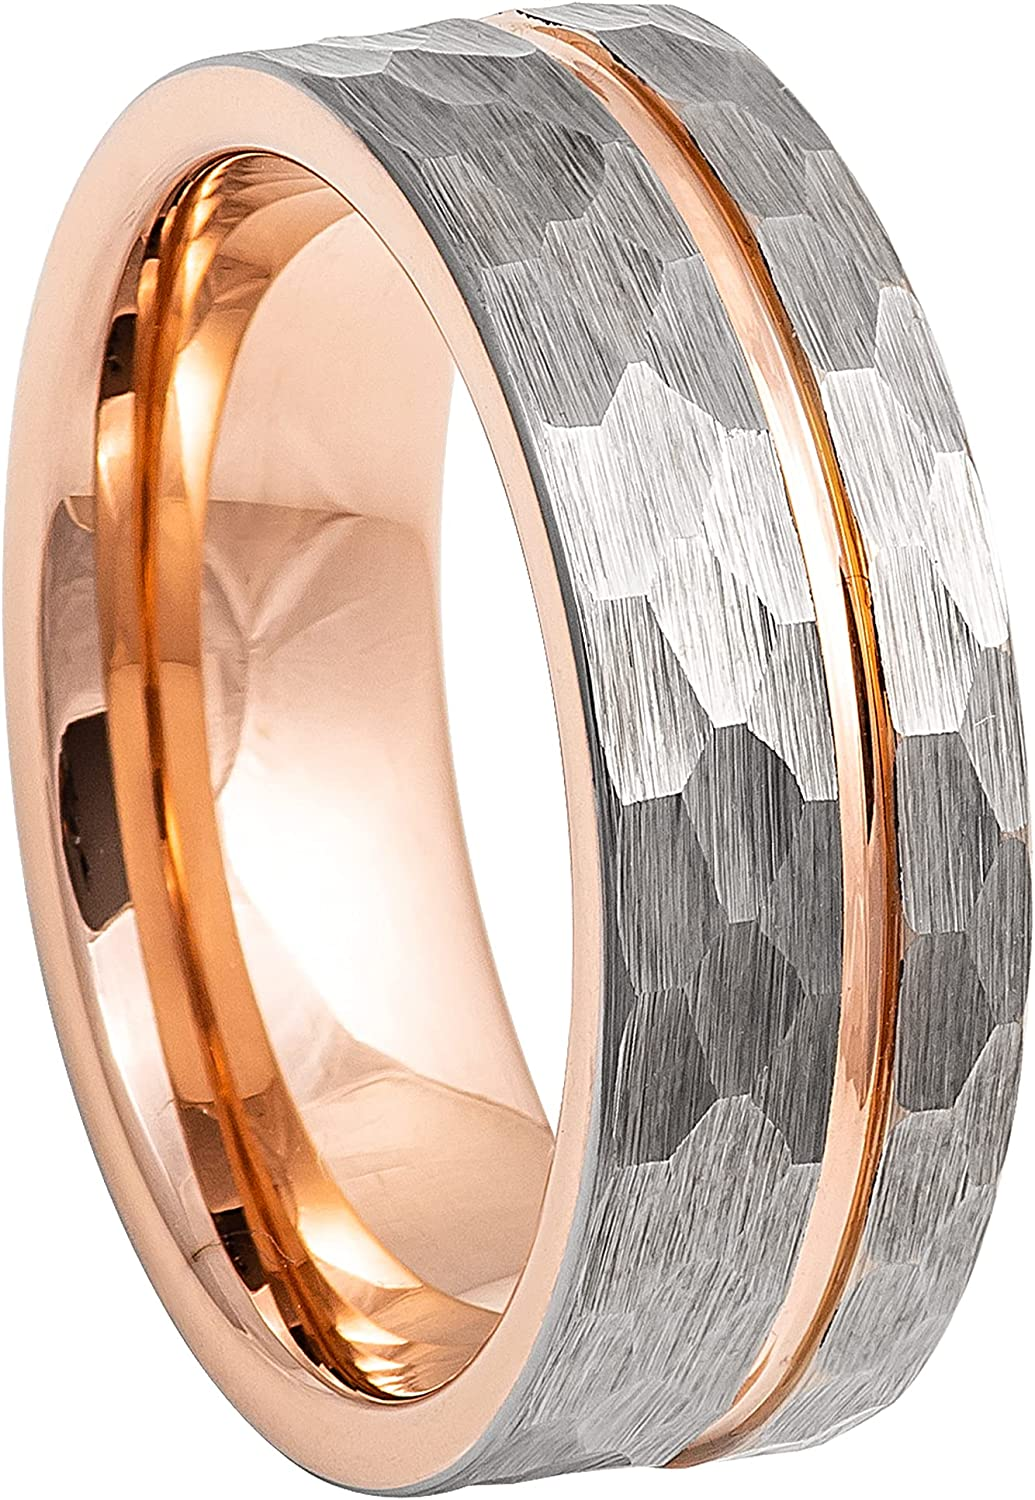 Max 75% OFF Tungsten Ring 2-Tone Rose Gold Hammered Off Grooved Center Virginia Beach Mall Men's